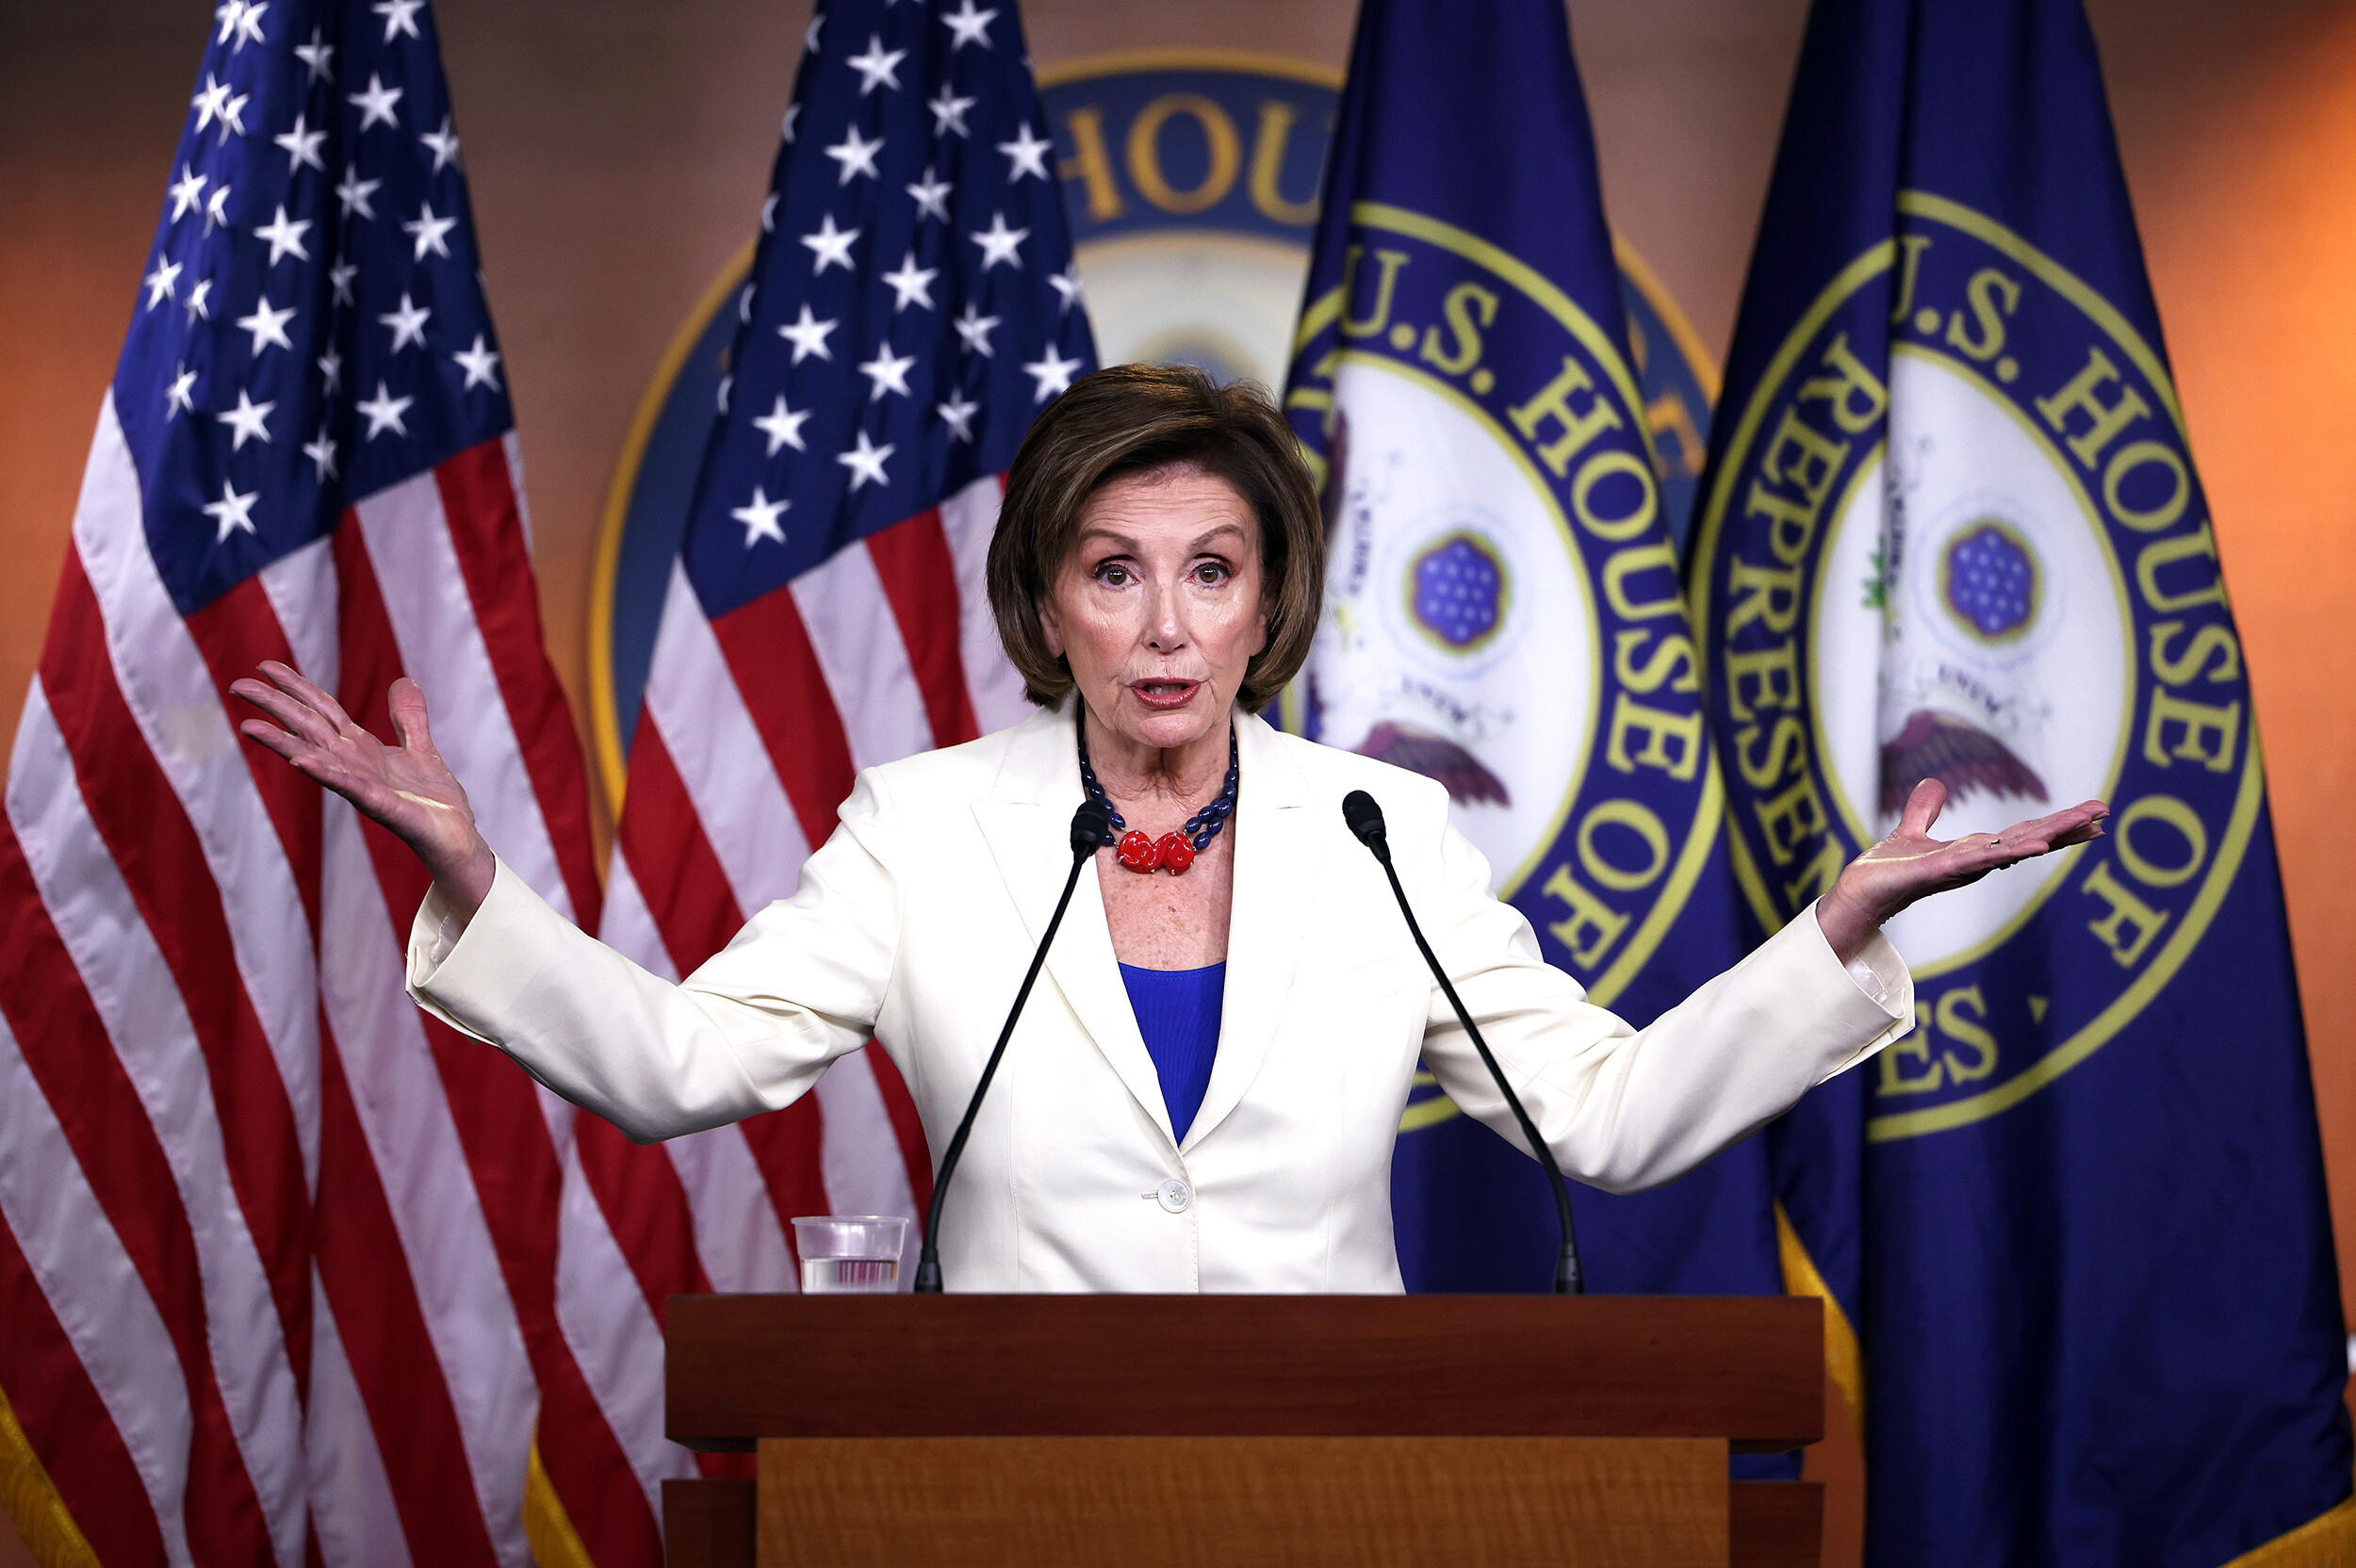 <i>Kevin Dietsch/Getty Images</i><br/>Speaker of the House Nancy Pelosi announced that she will create a committee to investigate the January 6 attack on the Capitol.